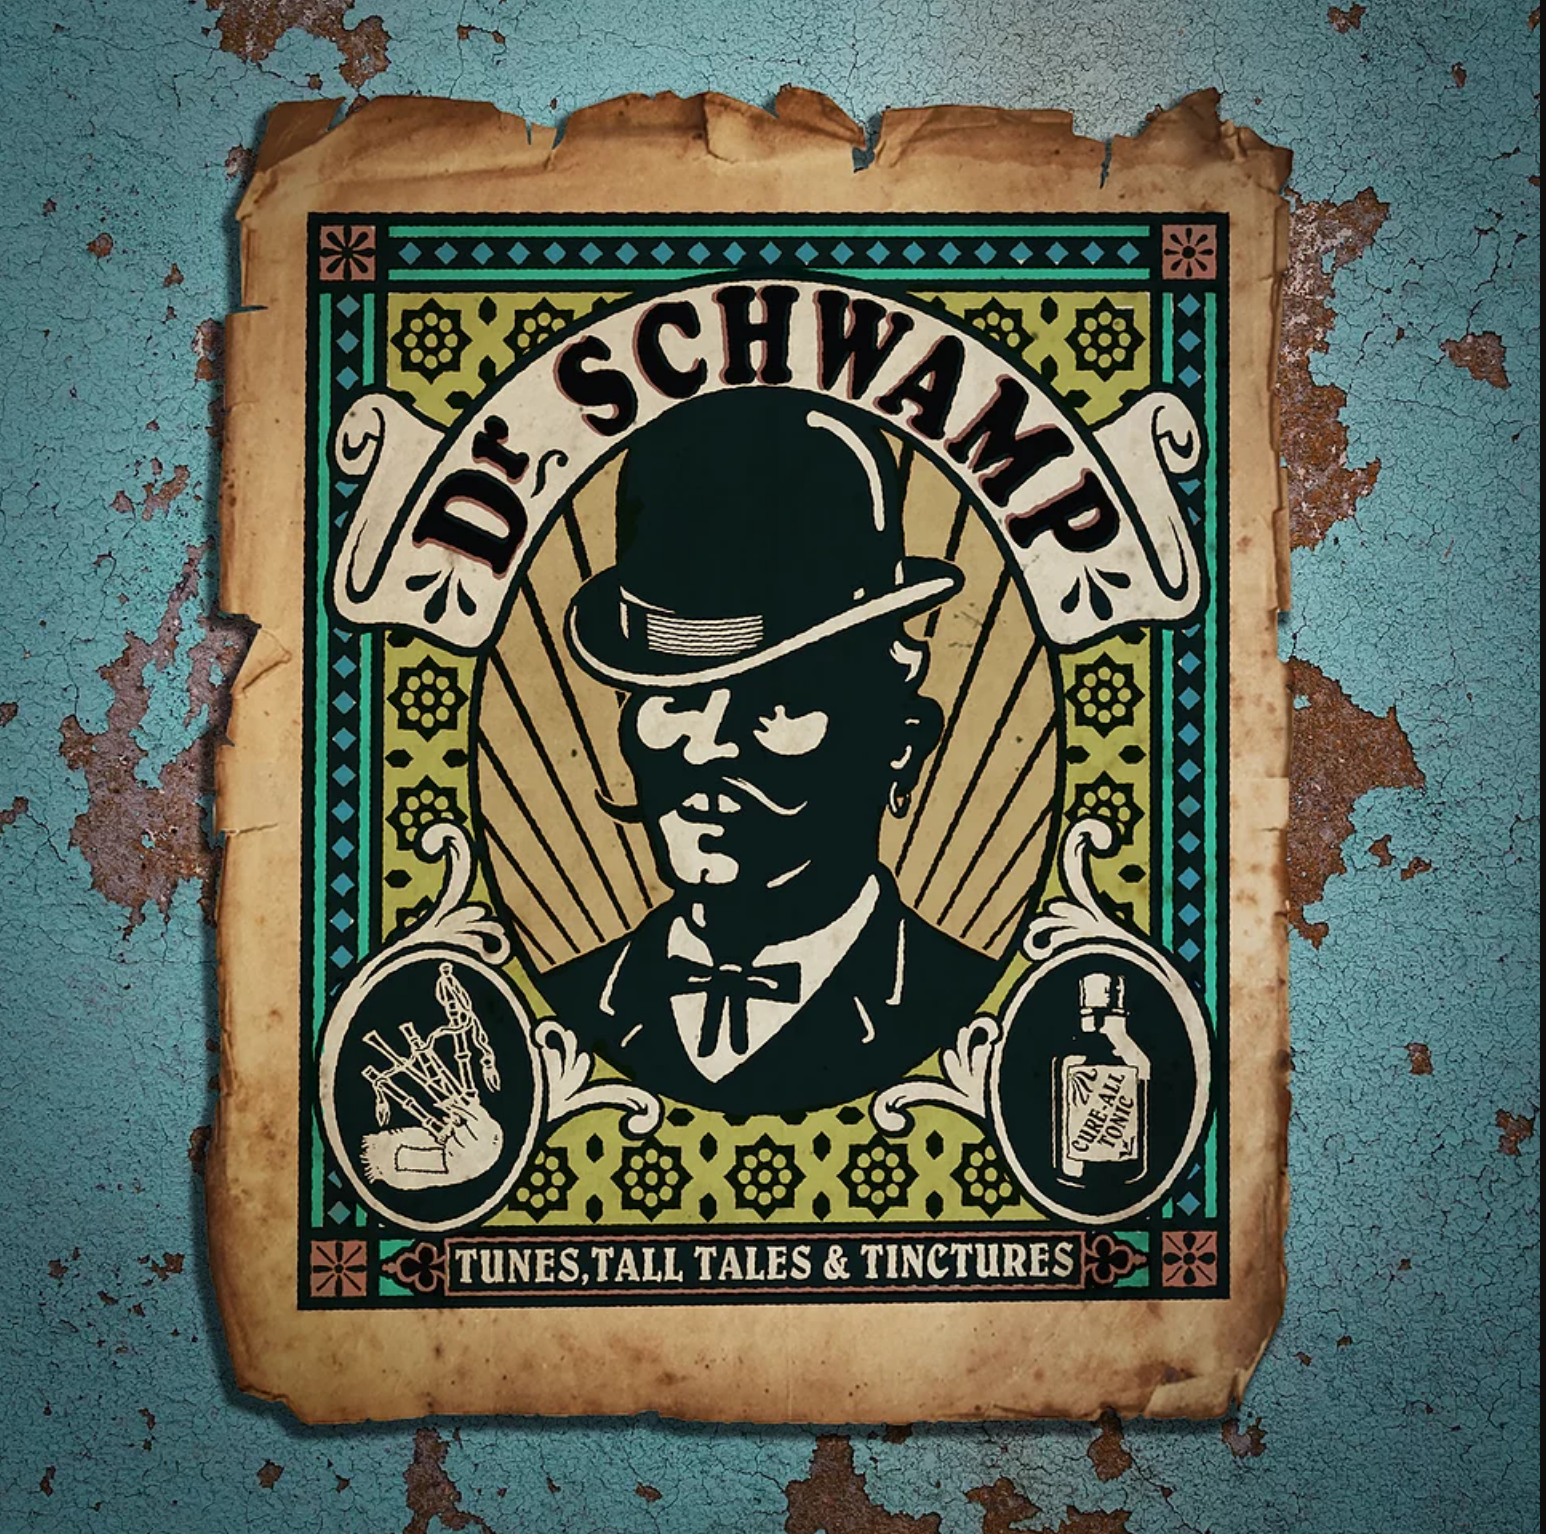 Ready to Get Up and Dance? Check Out Dr Schwamp's Newest Single and Album